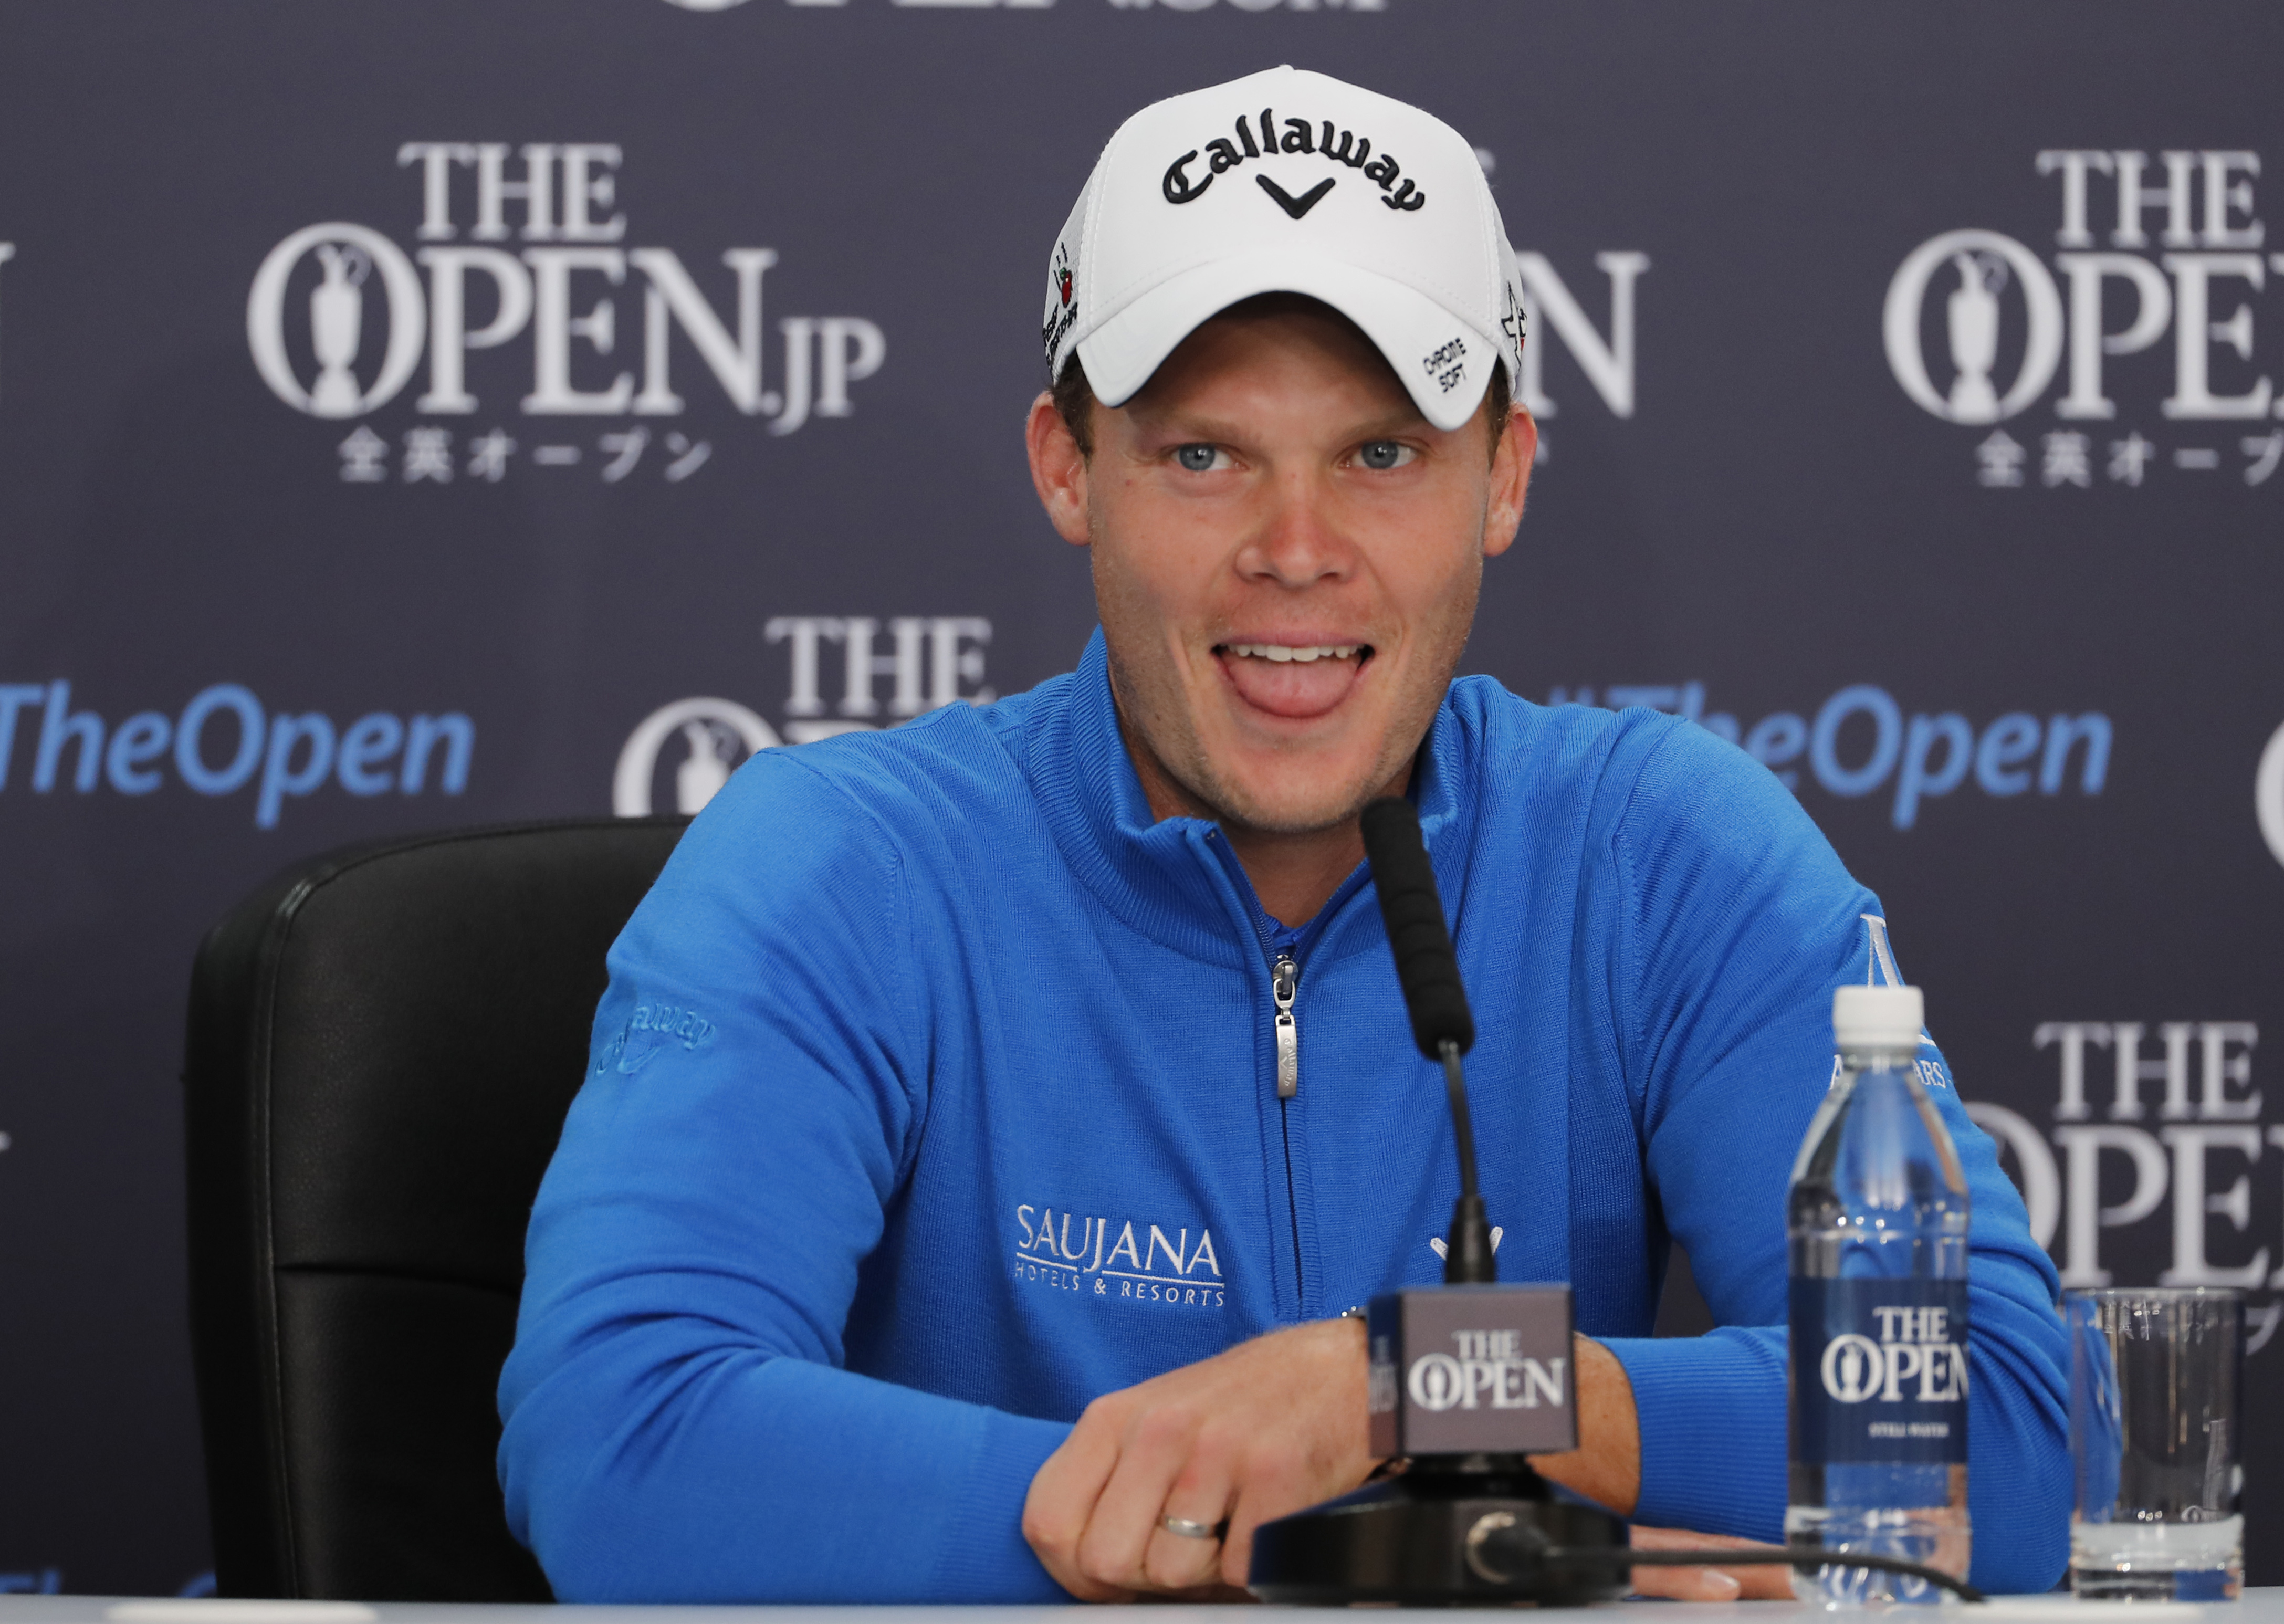 Britain's Danny Willett reacts to a question from the media during a press conference ahead of the British Open Golf Championships at the Royal Troon Golf Club in Troon, Scotland, Tuesday, July 12, 2016. The Open starts Thursday. (AP Photo/Ben Curtis)